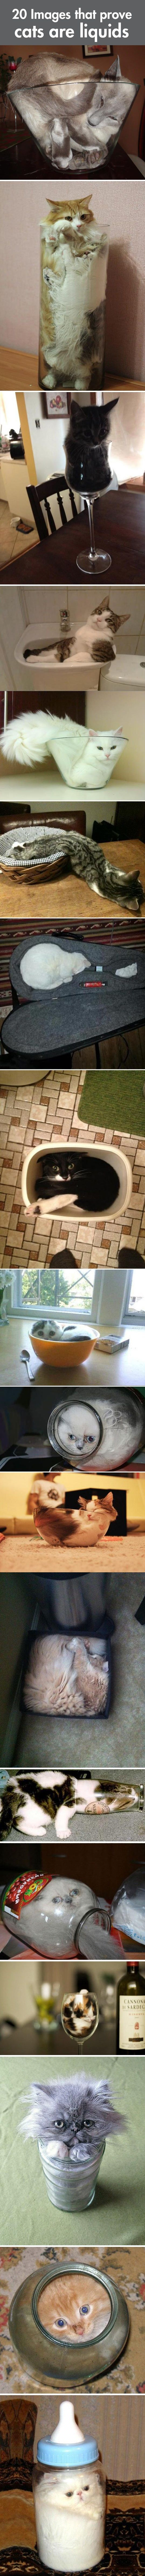 Definitive Proof That Cats Are Basically Liquids...